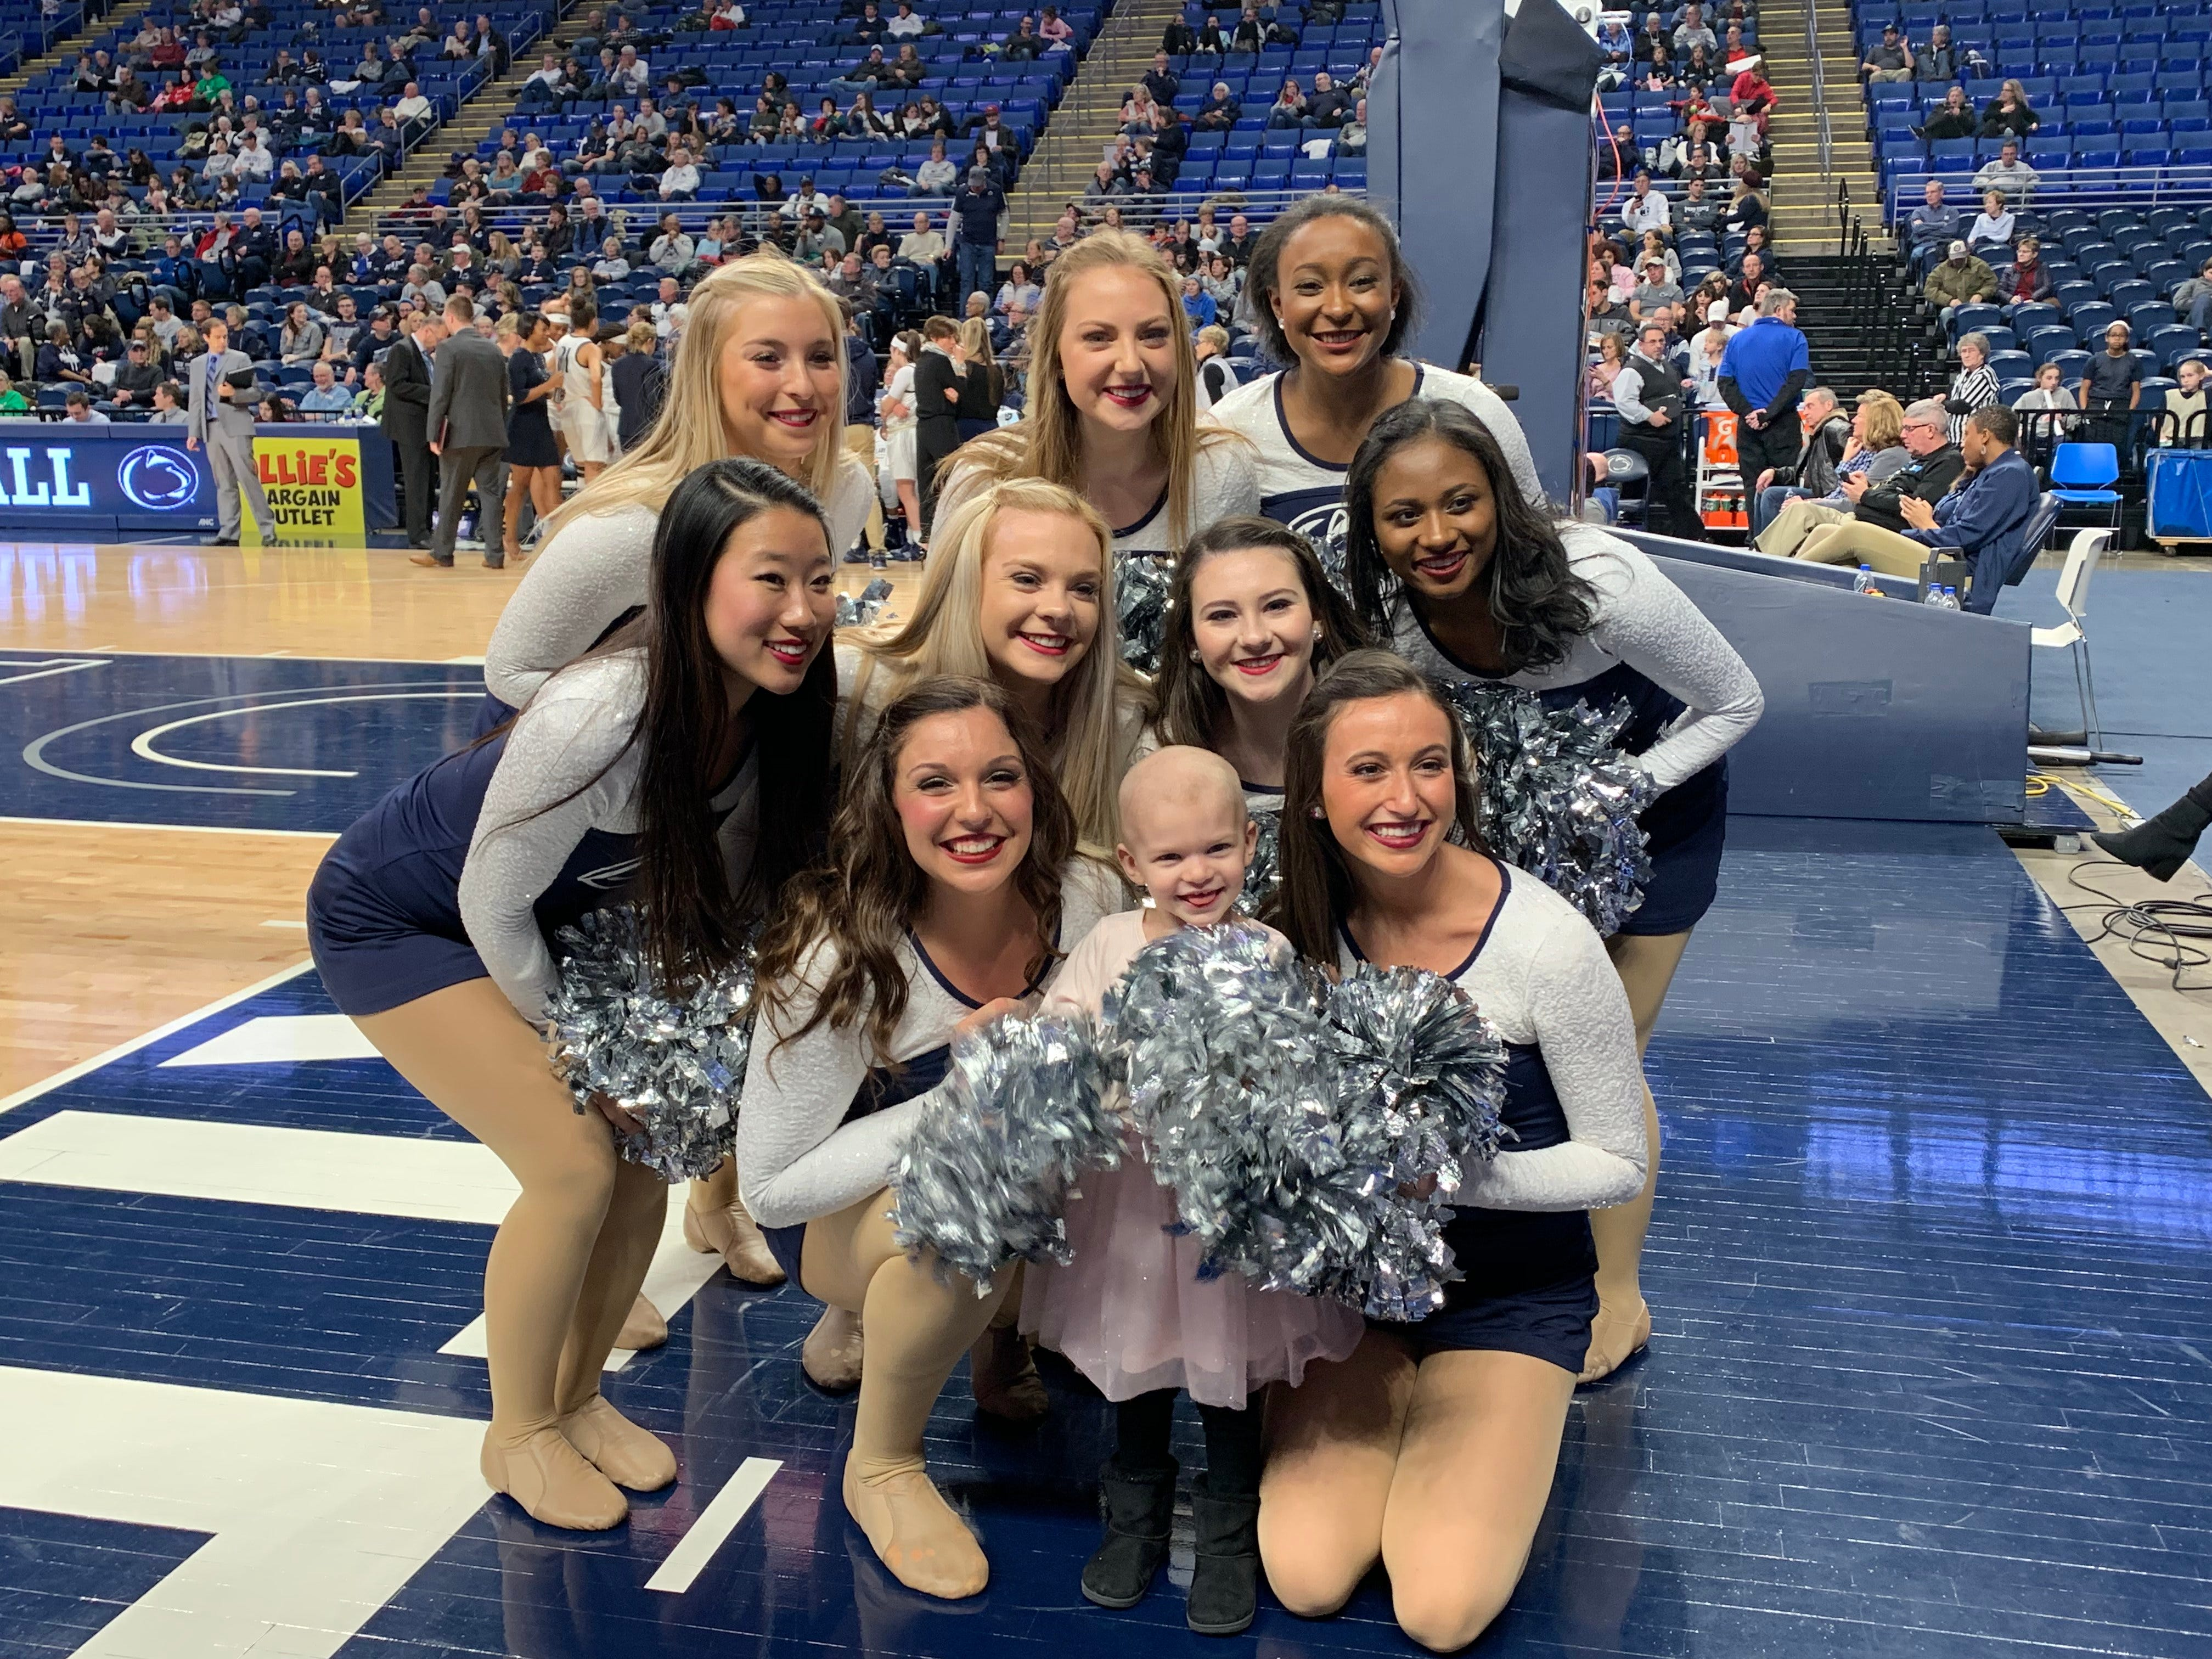 Shiloh Crimmel got to hang out with the Lionettes at a Women's Basketball game, January 12, 2019.